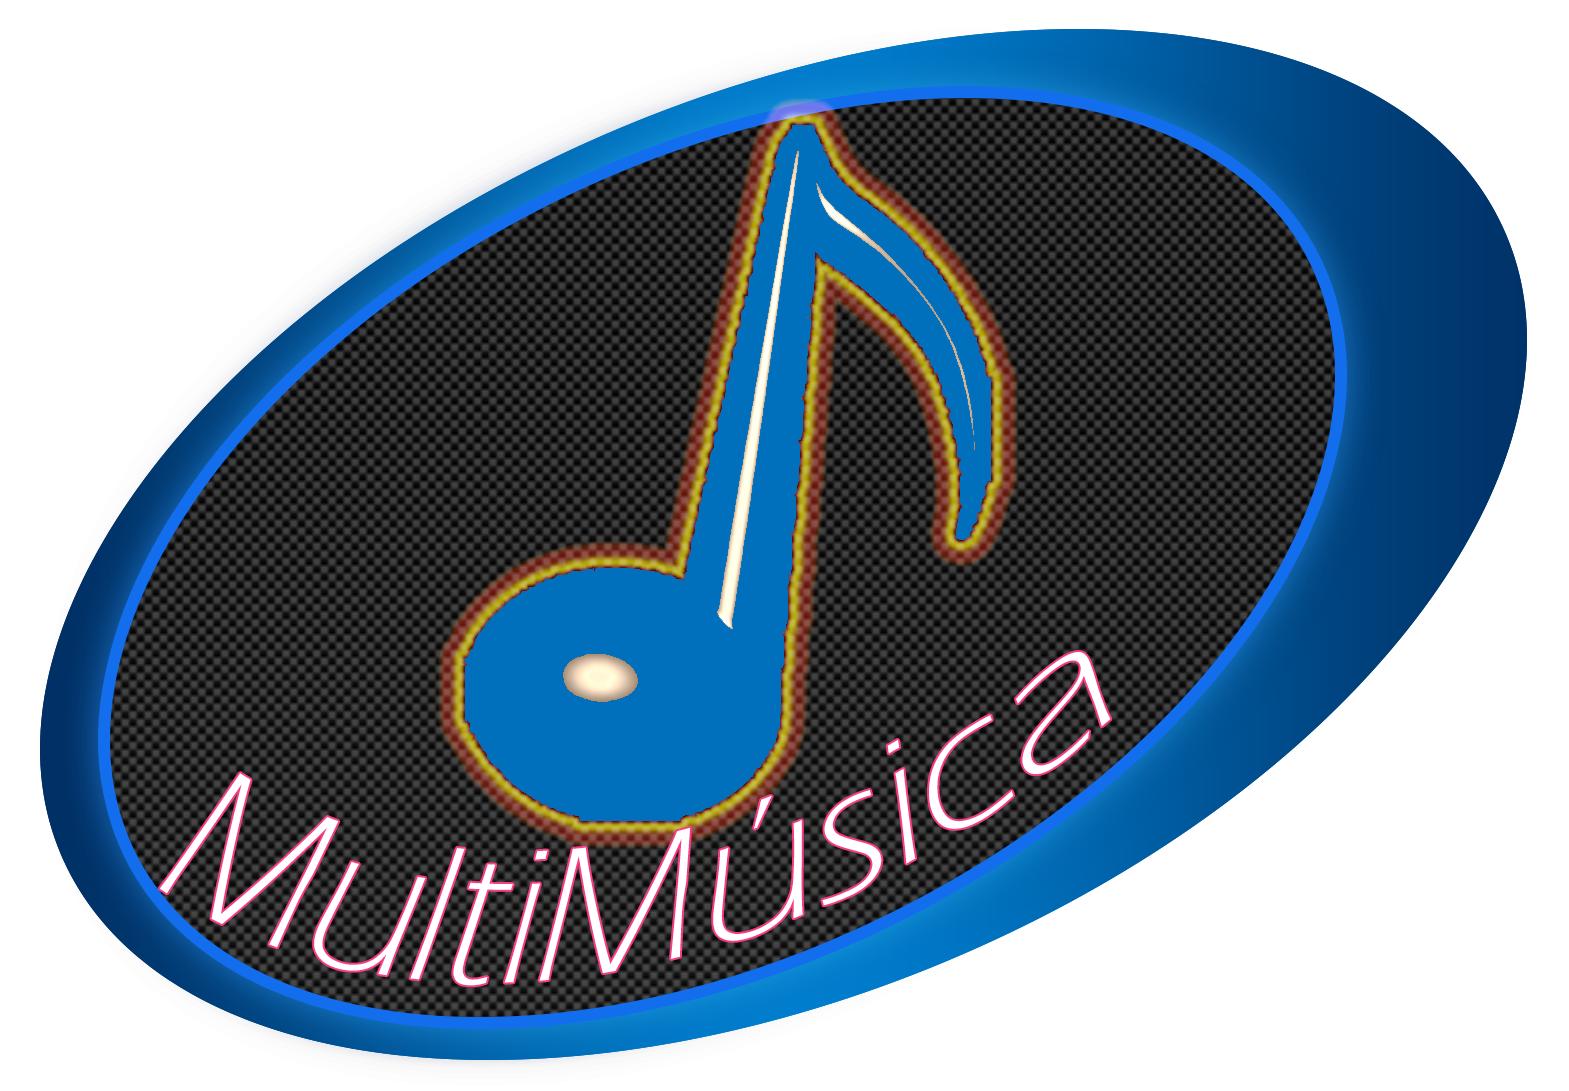 MultiMúsica